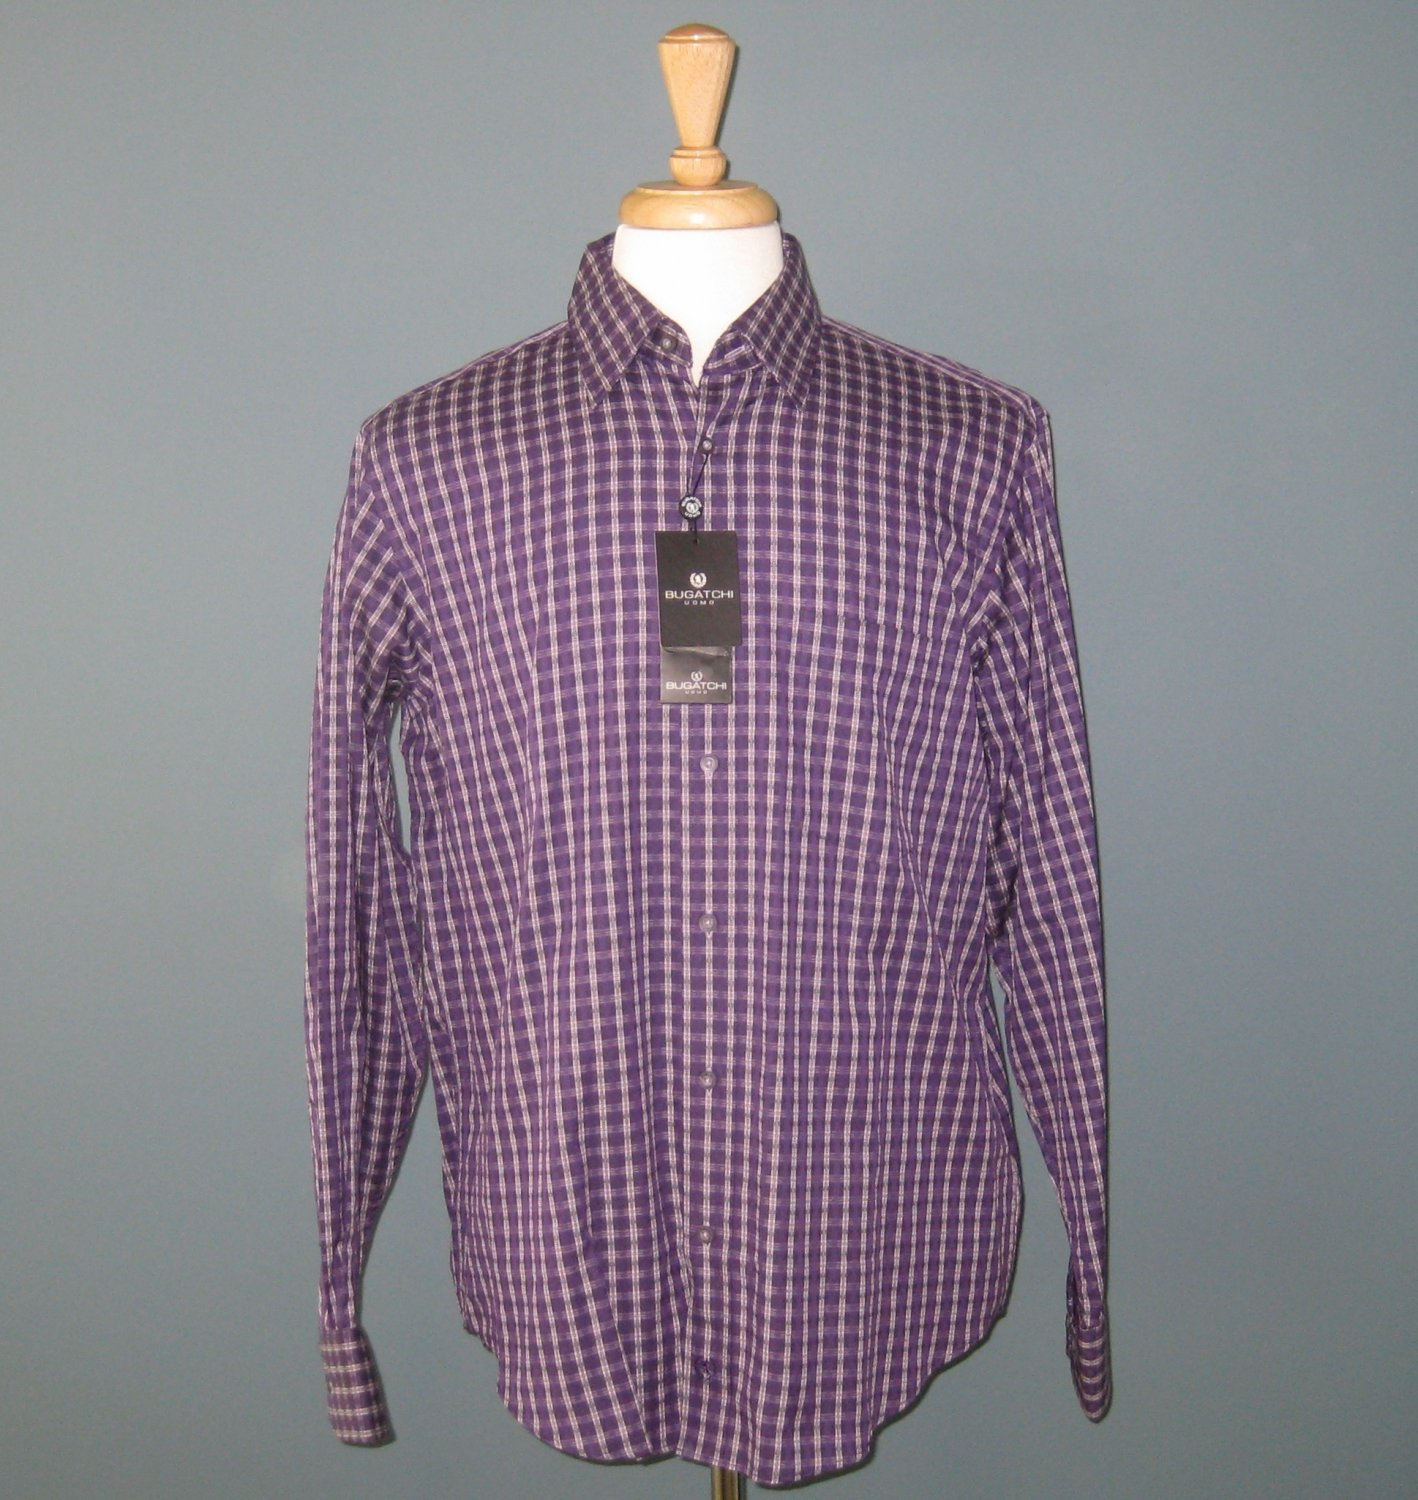 NWT Bugatchi Uomo 100% Cotton L/S Purple Box Check Shirt - S